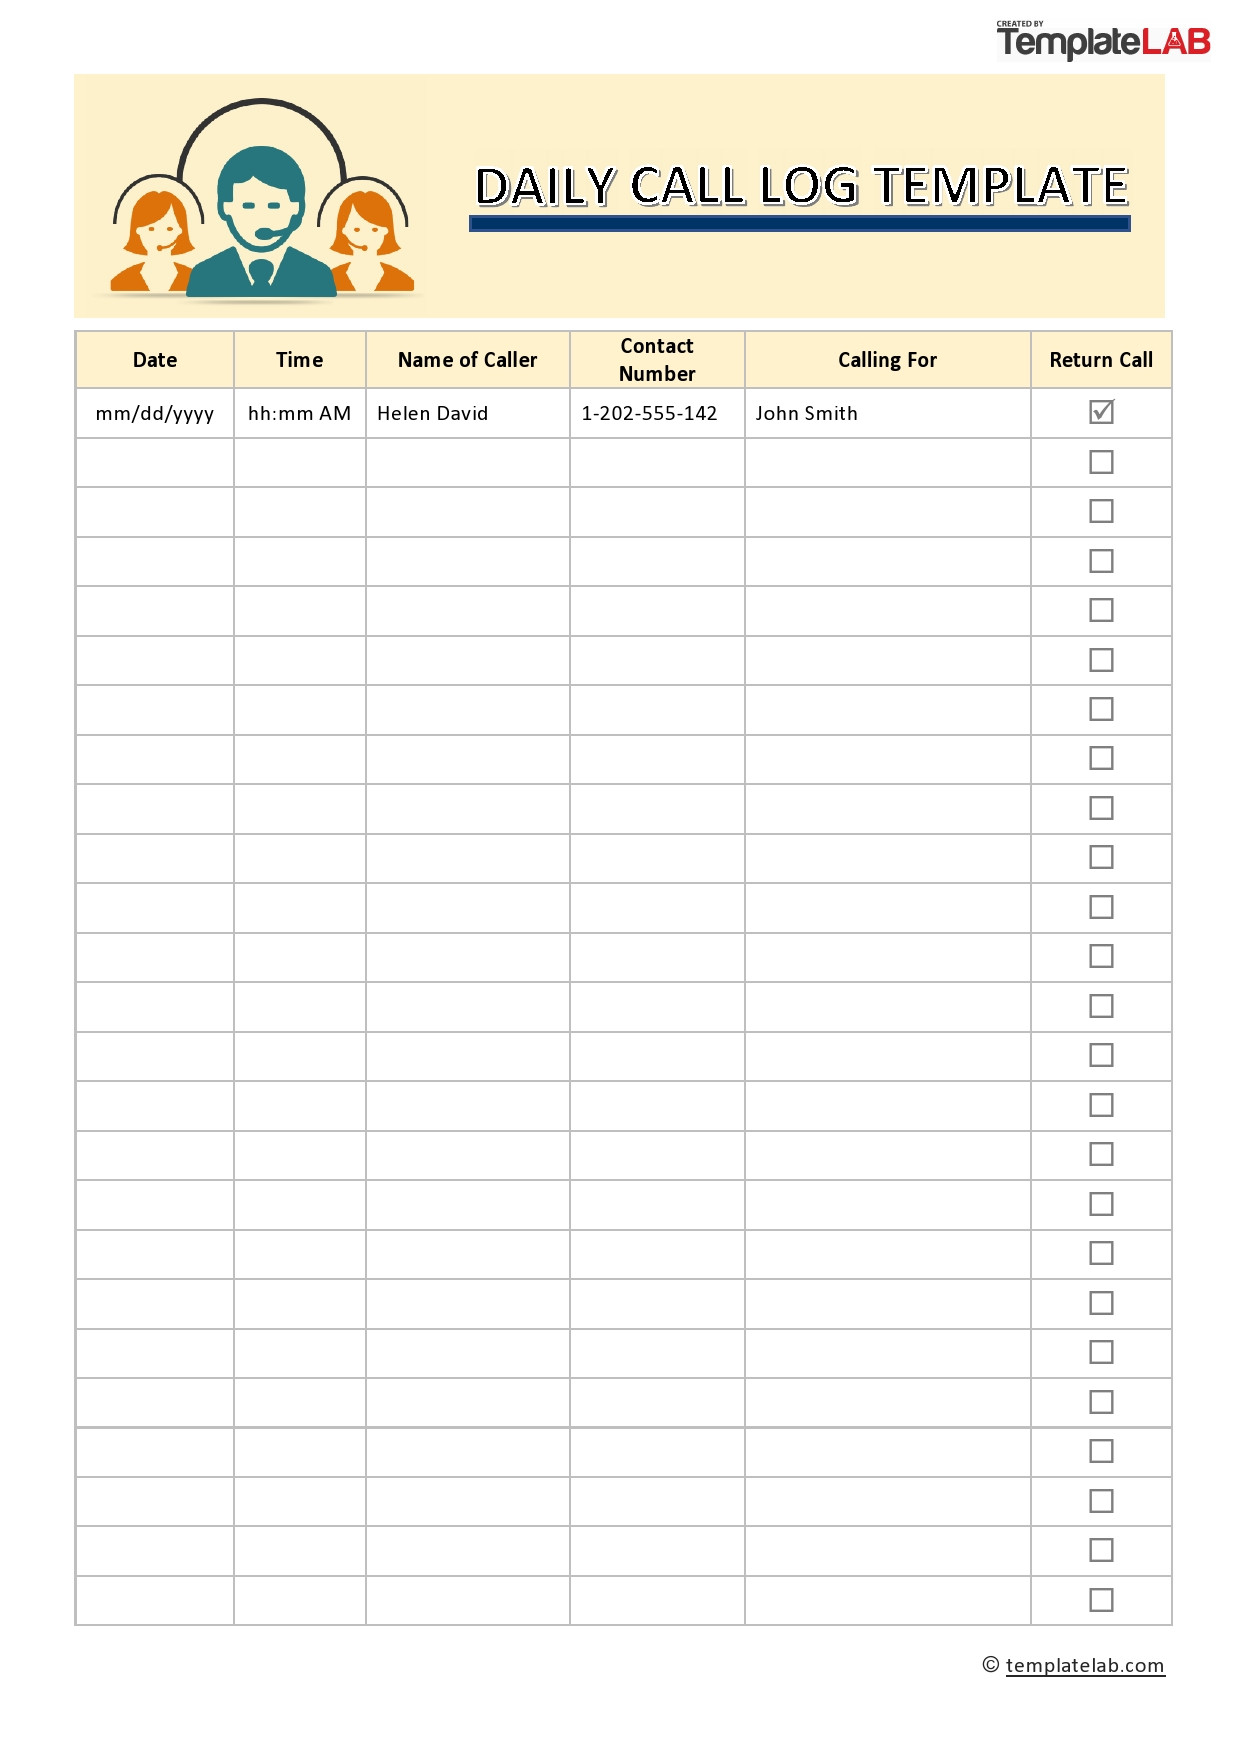 Phone Call Log Template